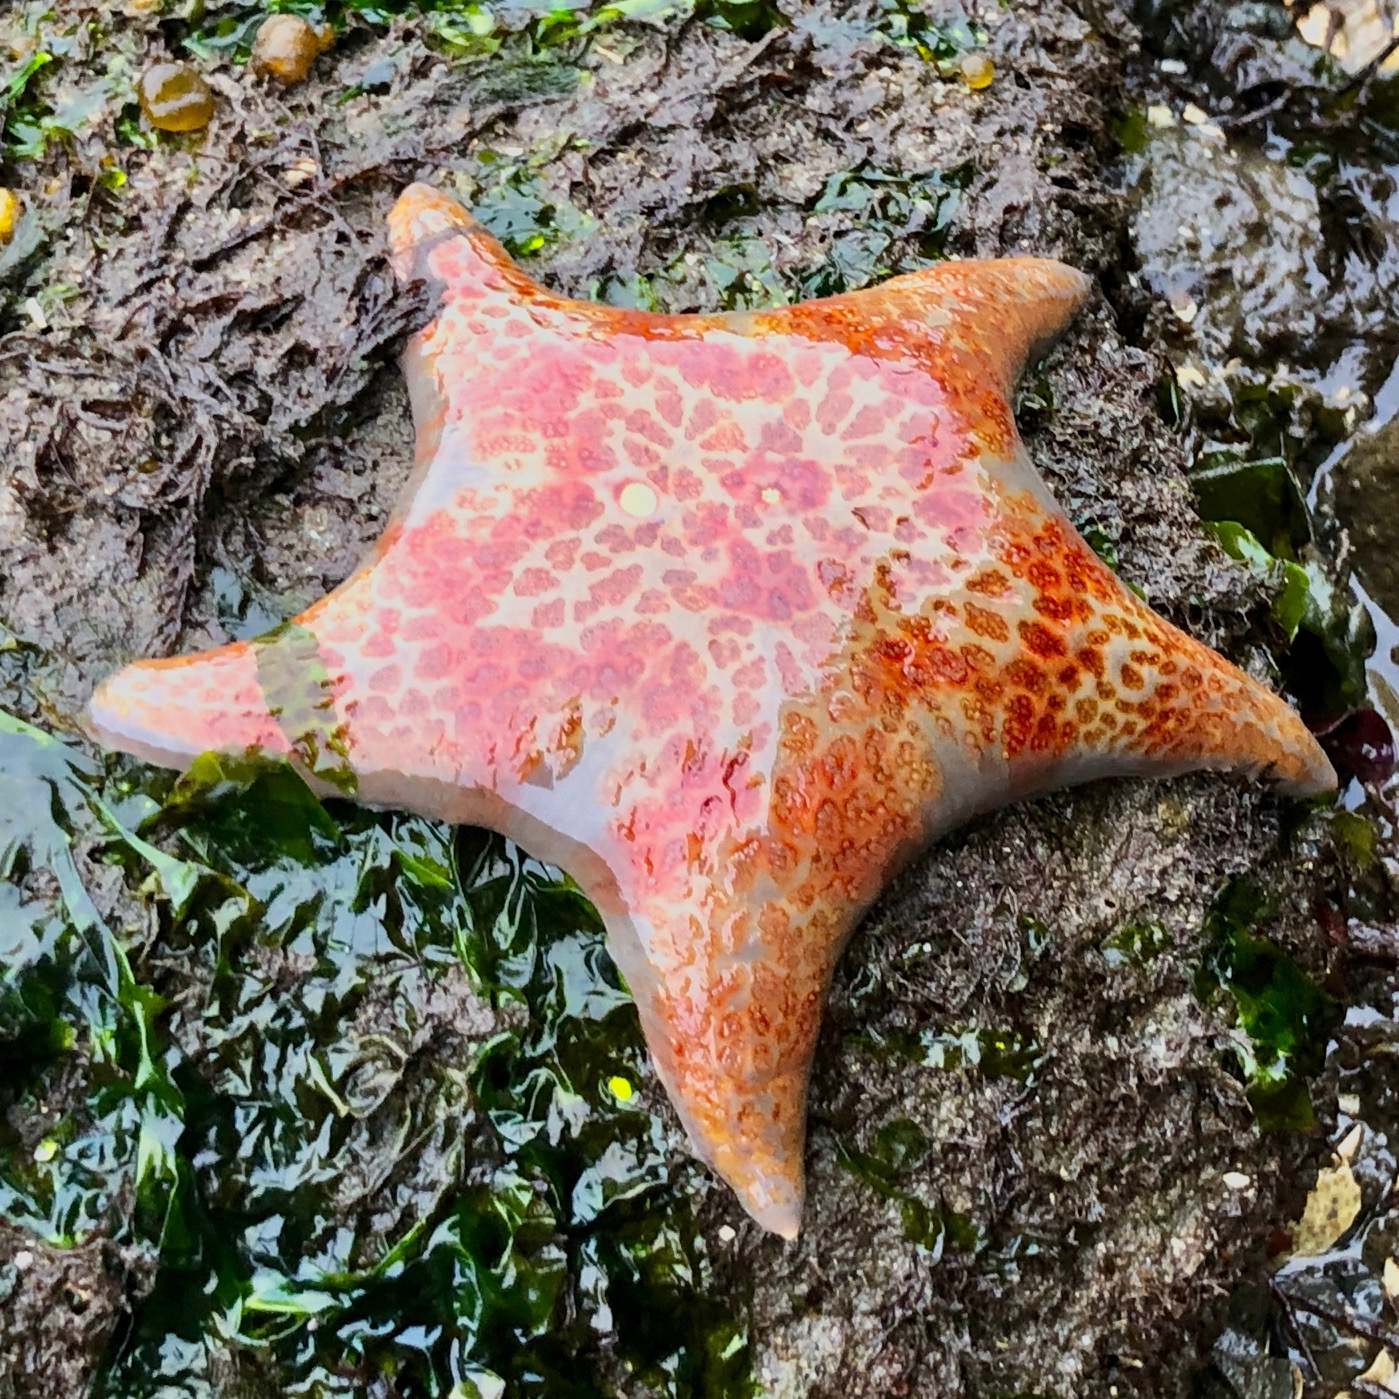 A very cool sea star - we found a few of these